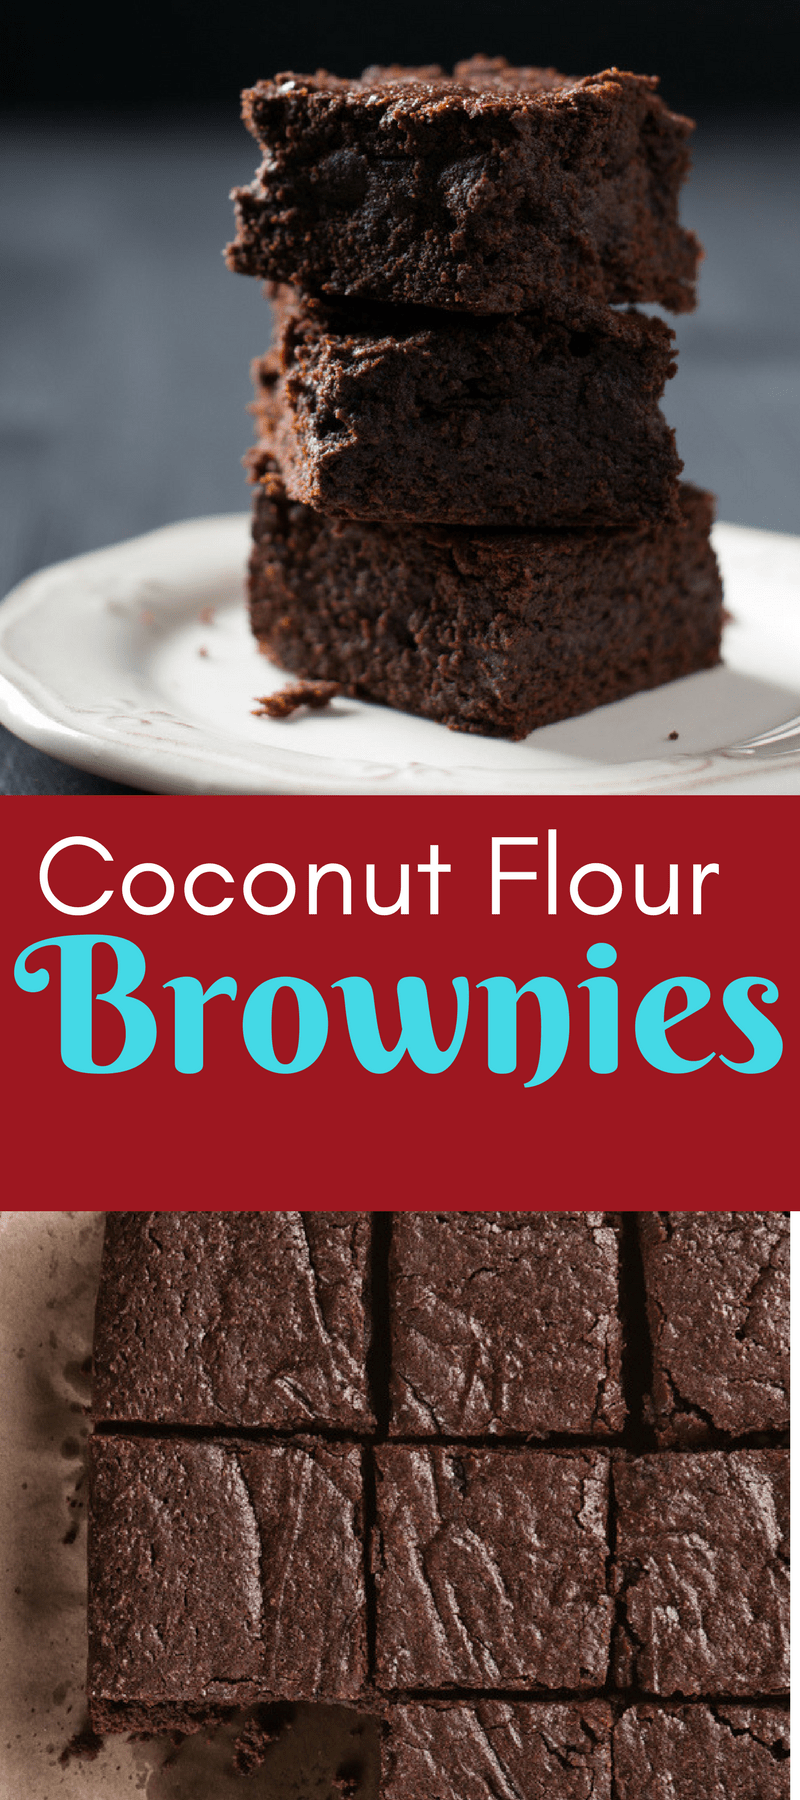 Now and then I like to have apaleo dessert and these are my go-to for a rich,chocolatycake-like coconut flourbrownies. Dare I say that these are the best coconut flour brownies, ever?